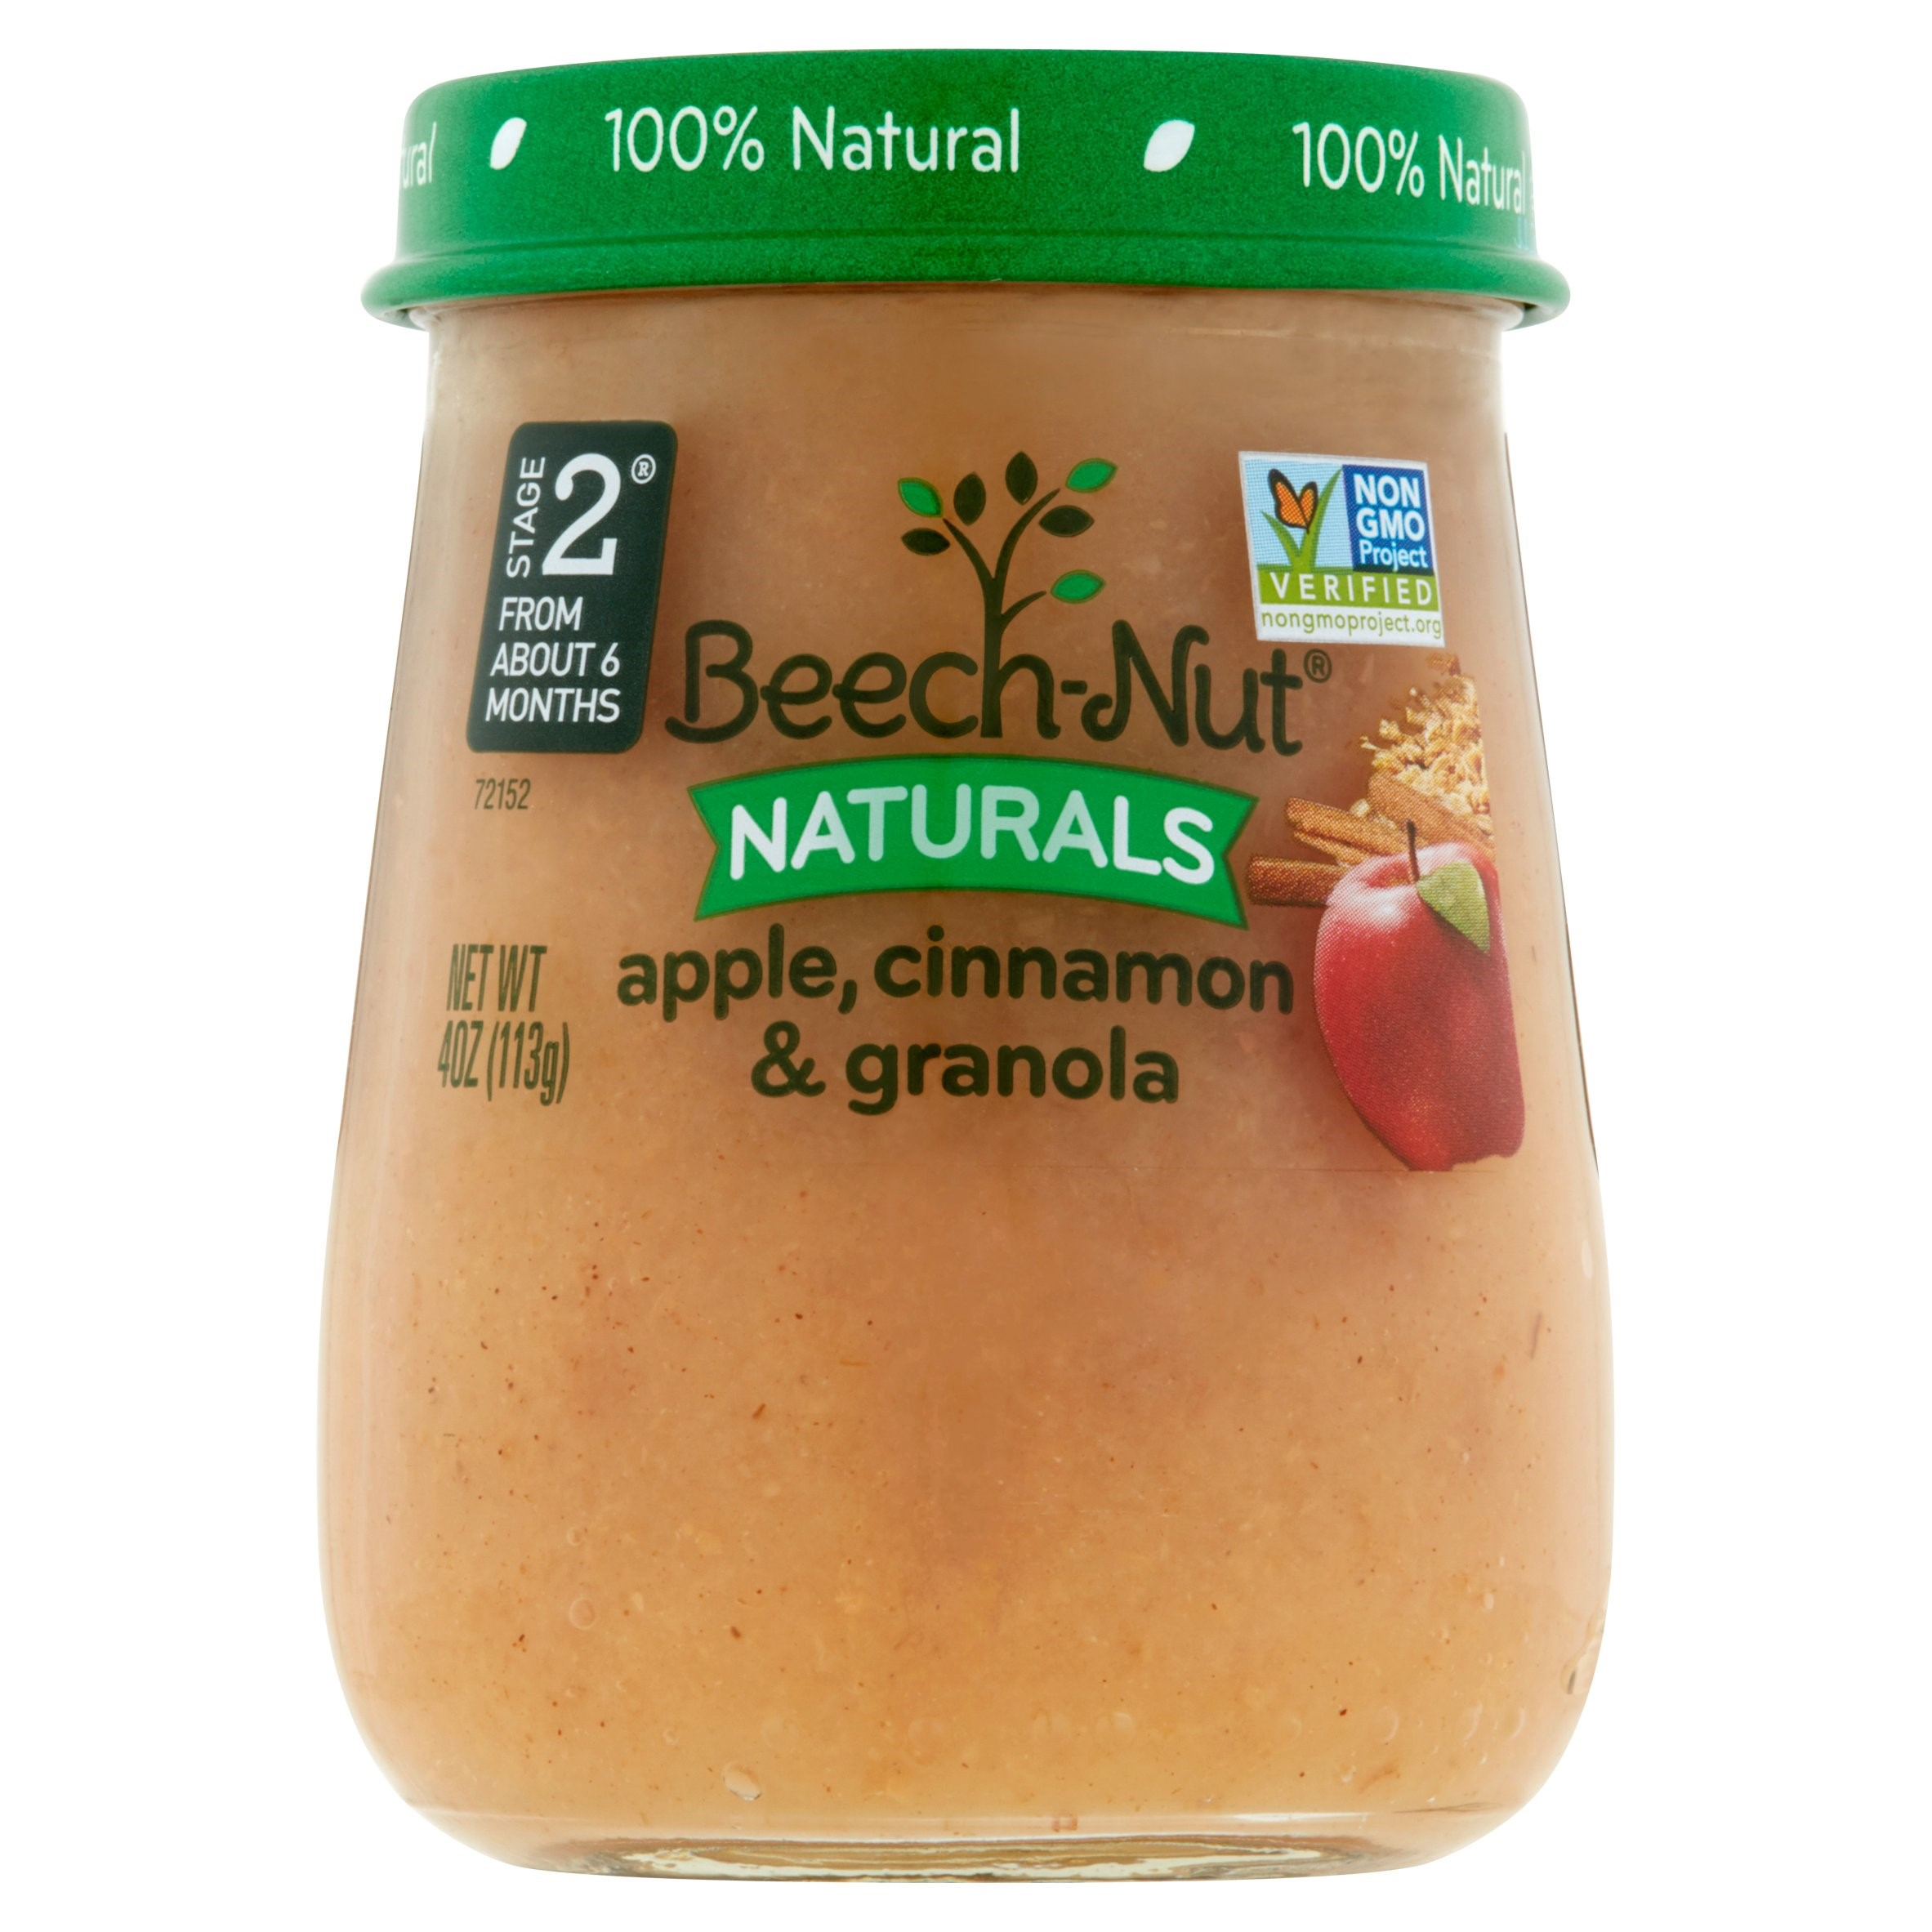 (10 Pack) Beech-Nut Naturals Apple. Cinnamon & Granola Baby Food Stage 2 From About 6 Months. 4 oz